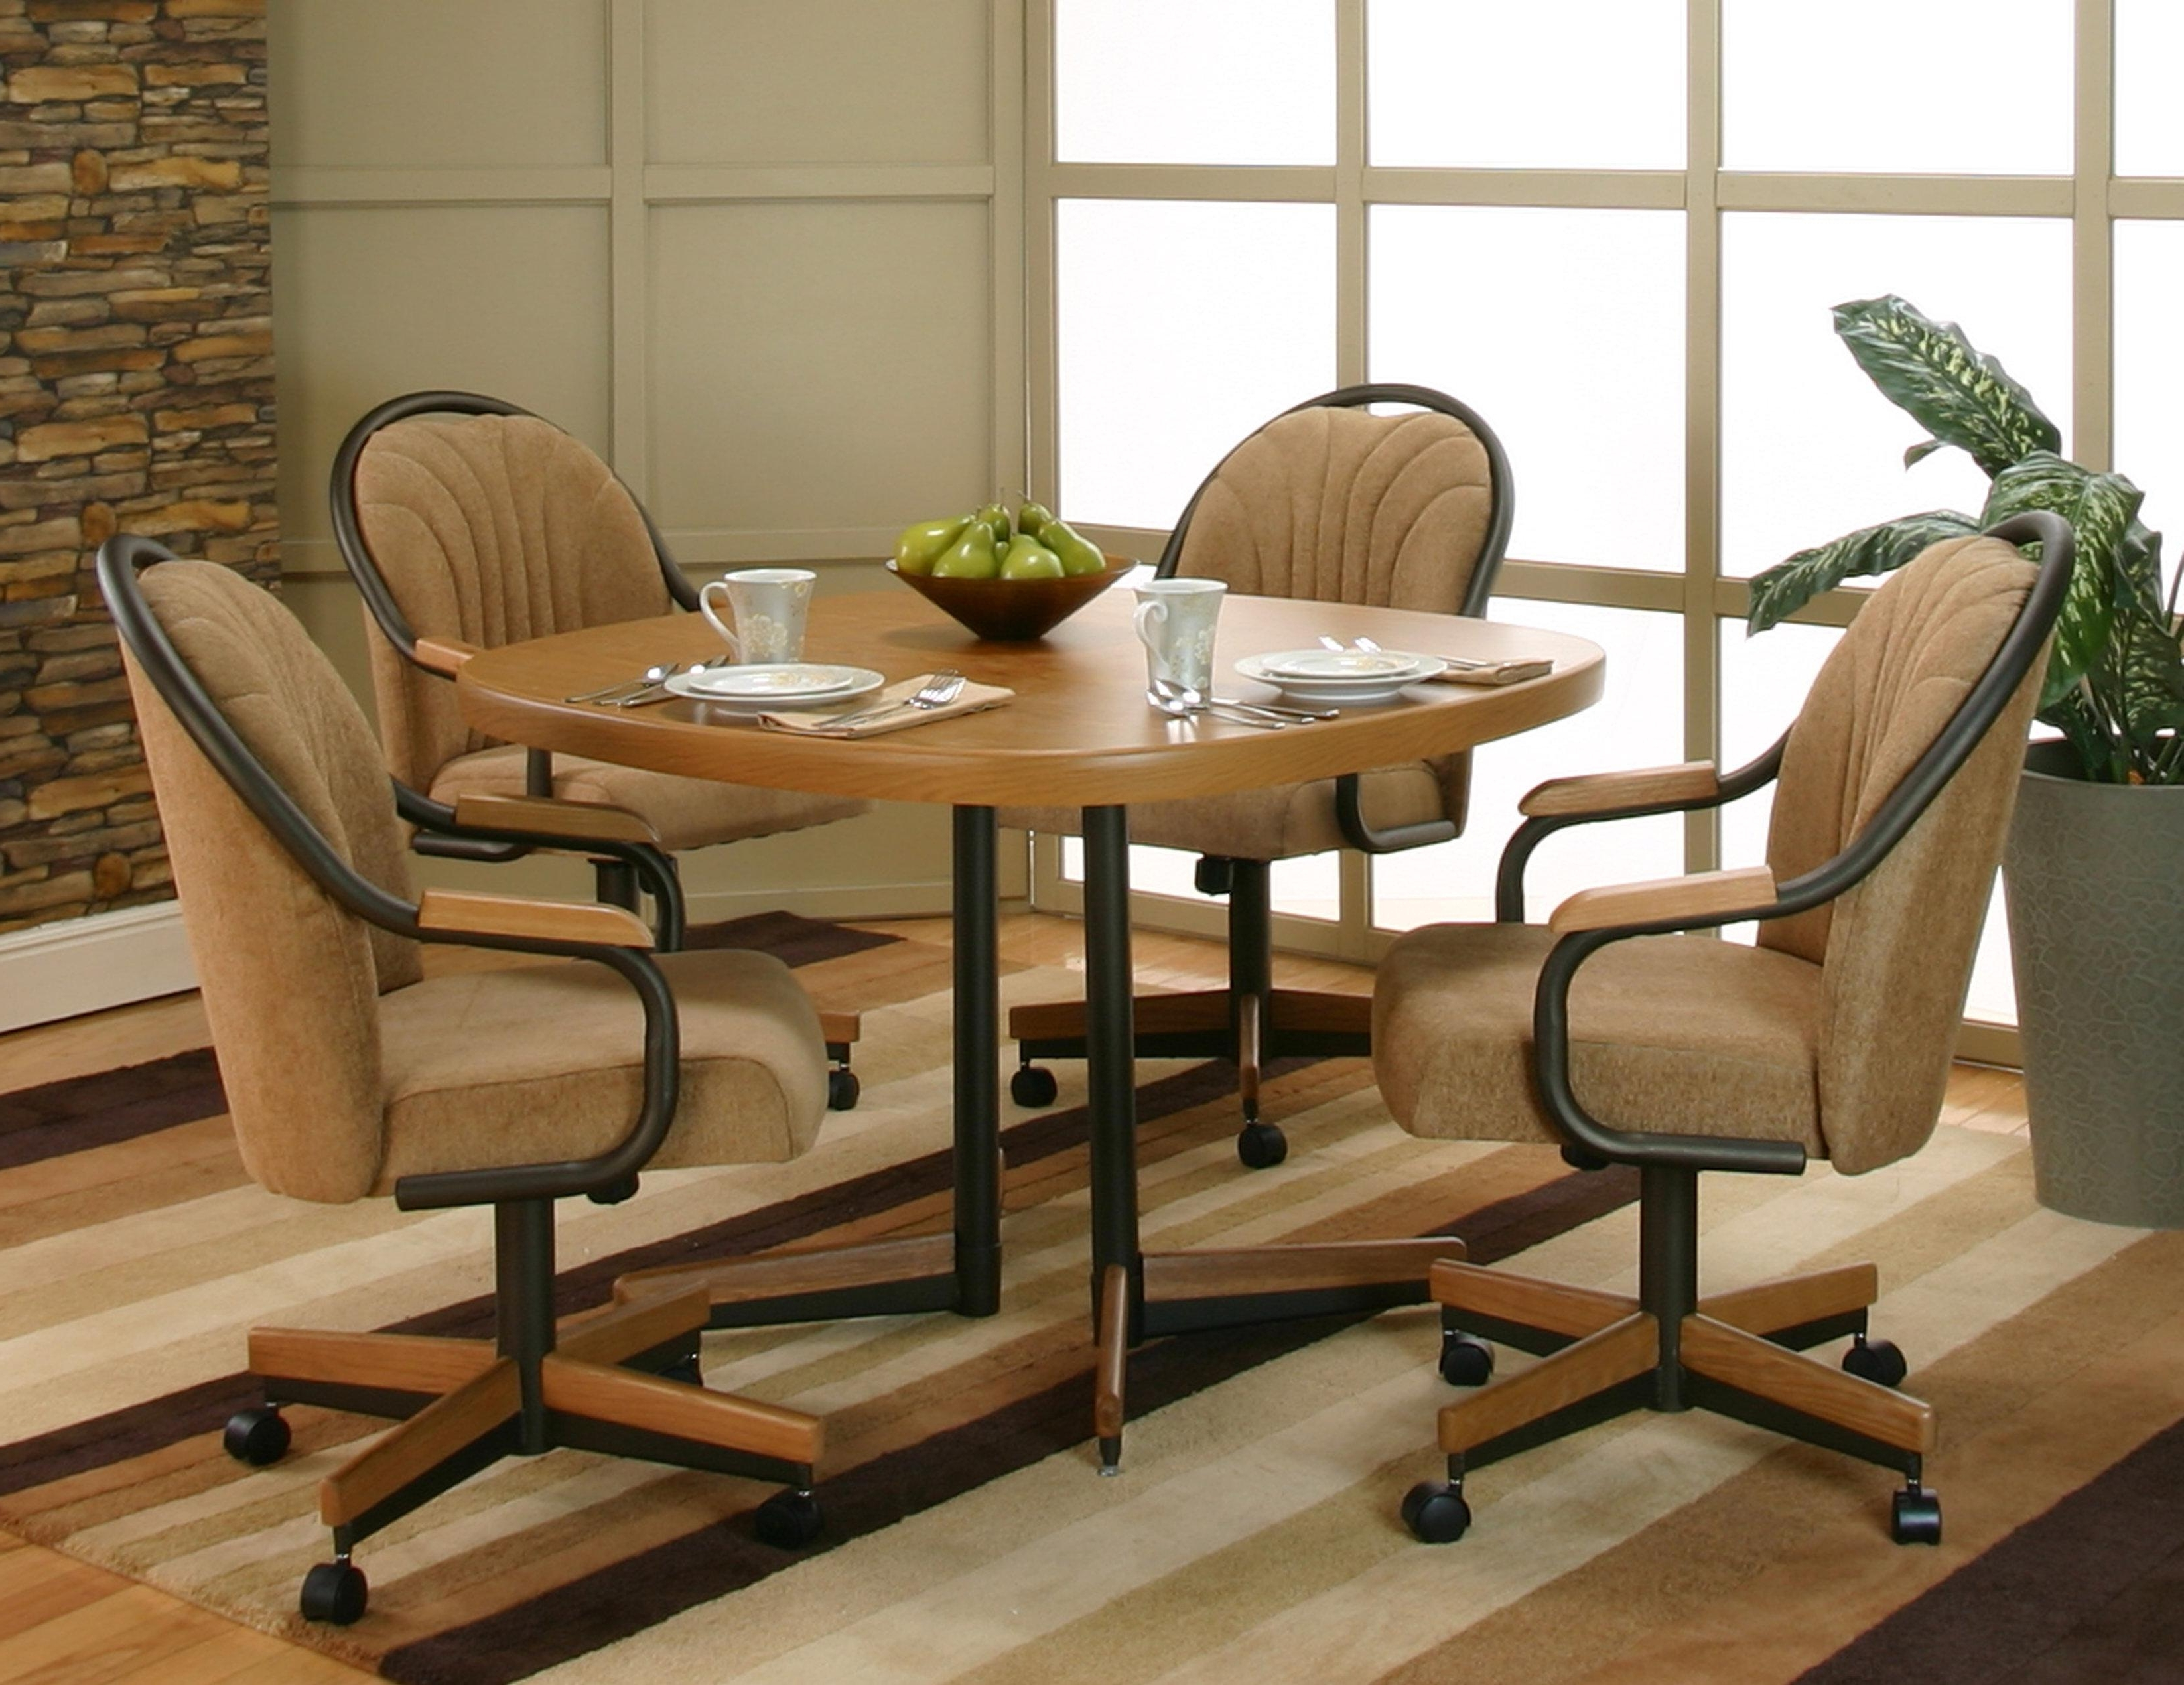 2018 Casual Sunset Oak Finished Dining Table With 4 Chenille Upholstered Intended For Round Oak Dining Tables And 4 Chairs (Gallery 12 of 25)